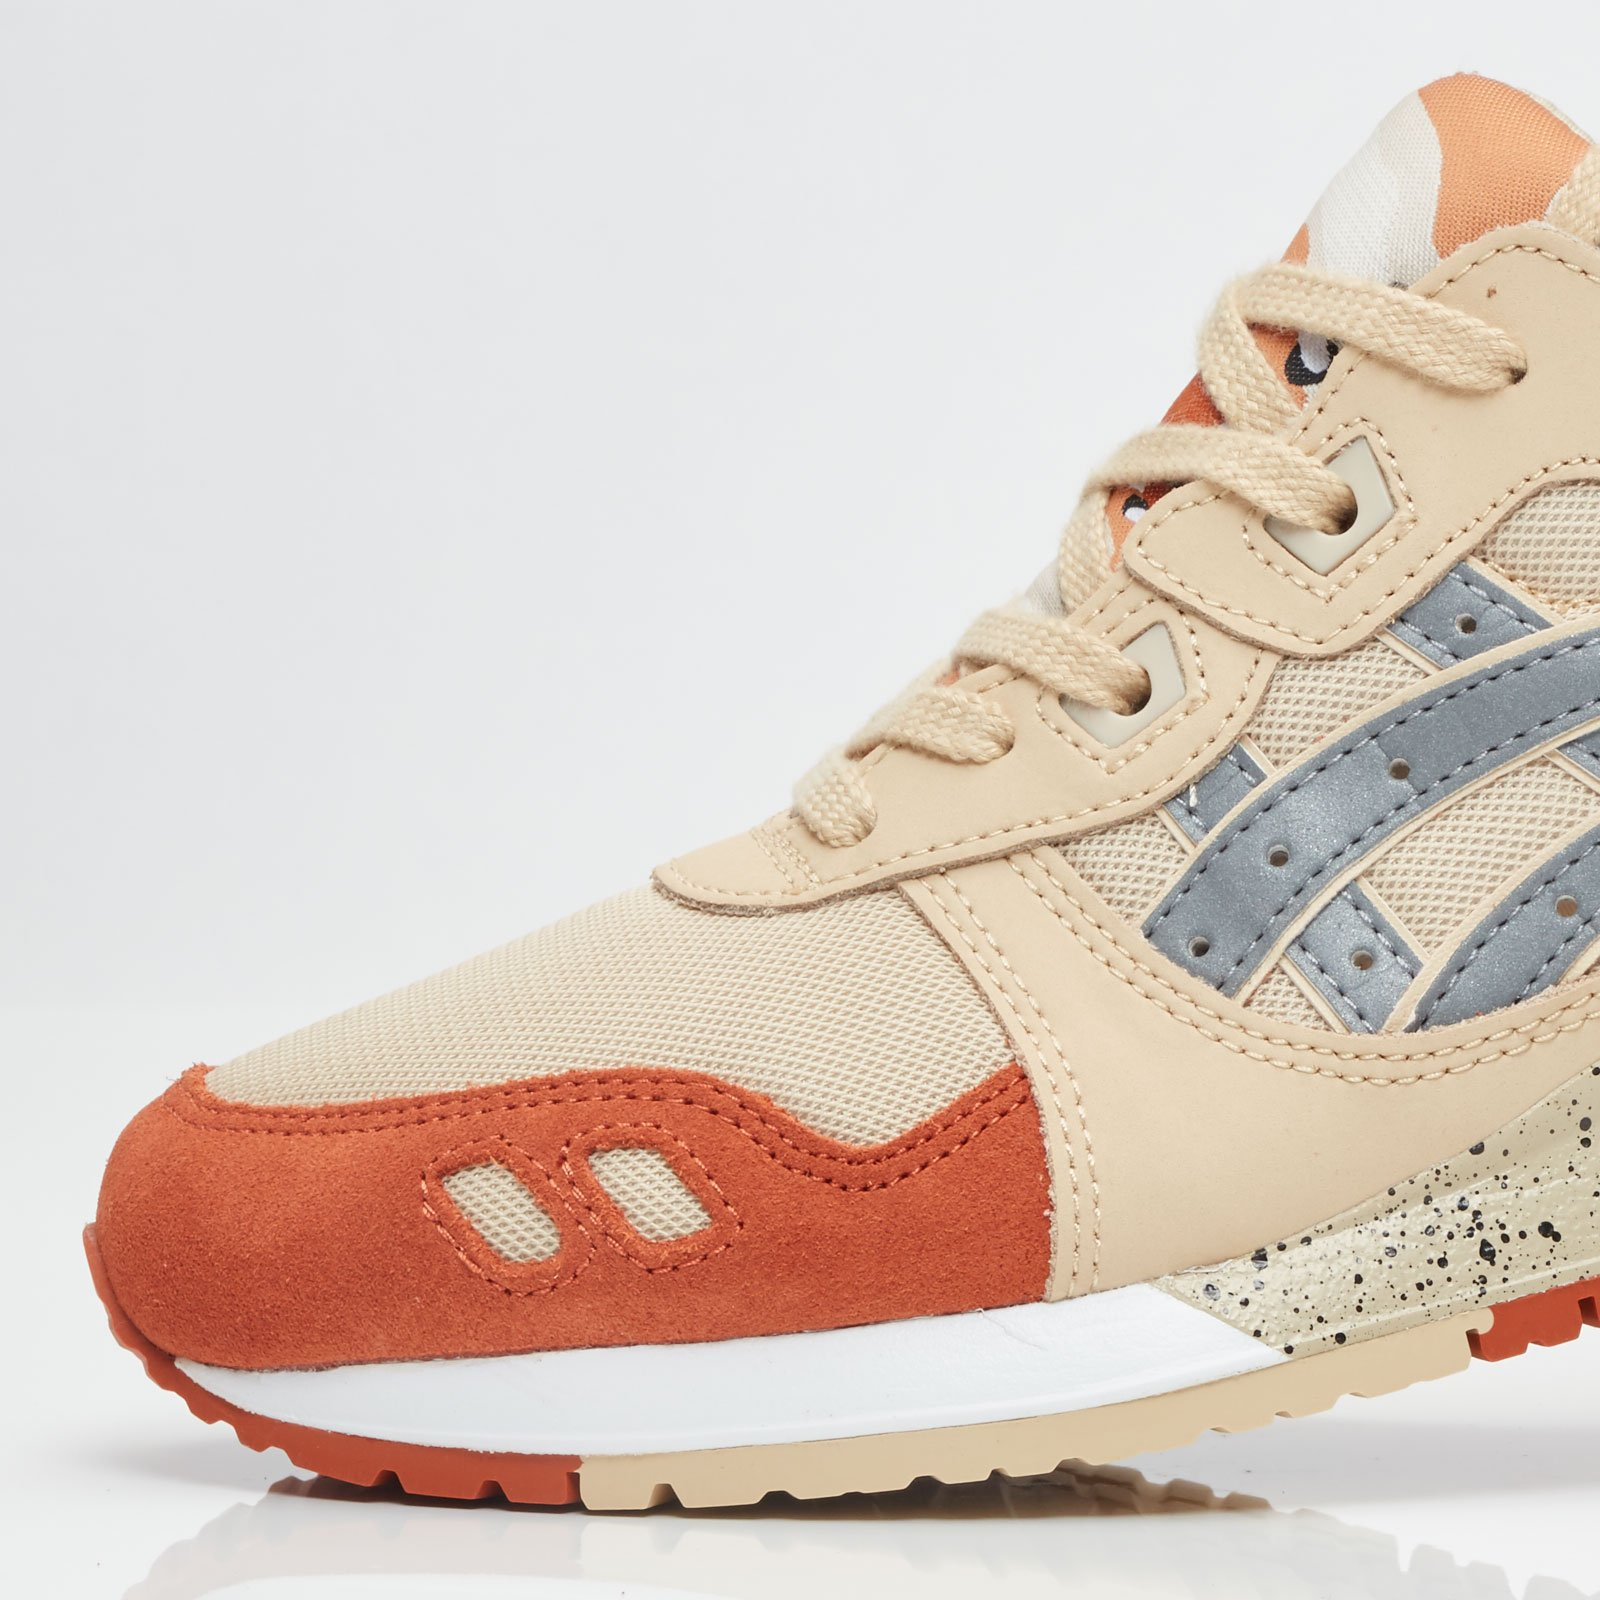 premium selection ace6f d84eb ASICS Tiger Gel-Lyte III - H7y0l-0593 - Sneakersnstuff ...